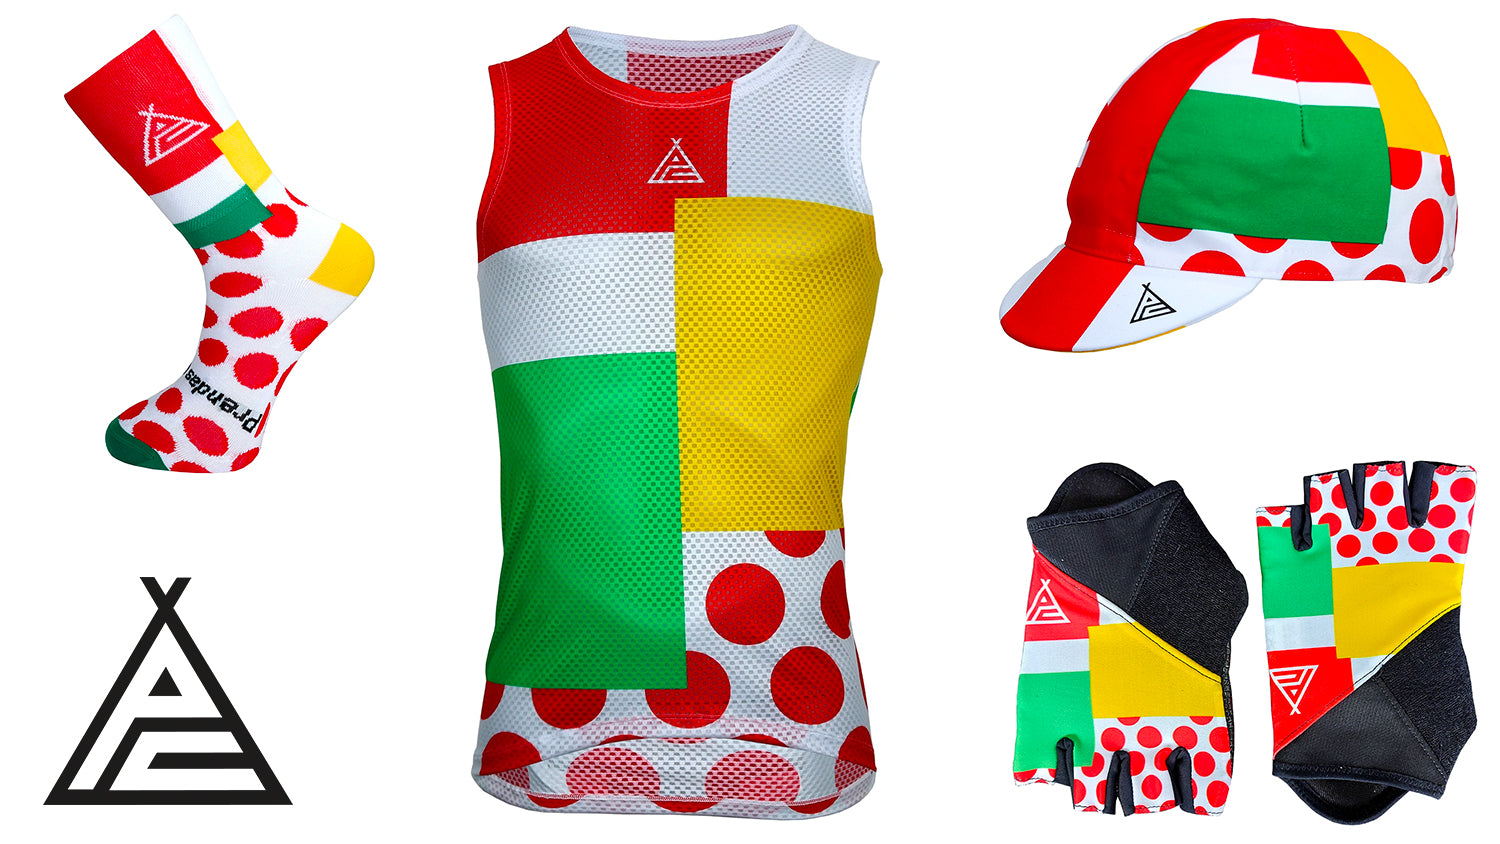 Buy the Combination Classification capsule collection available at Prendas Ciclismo